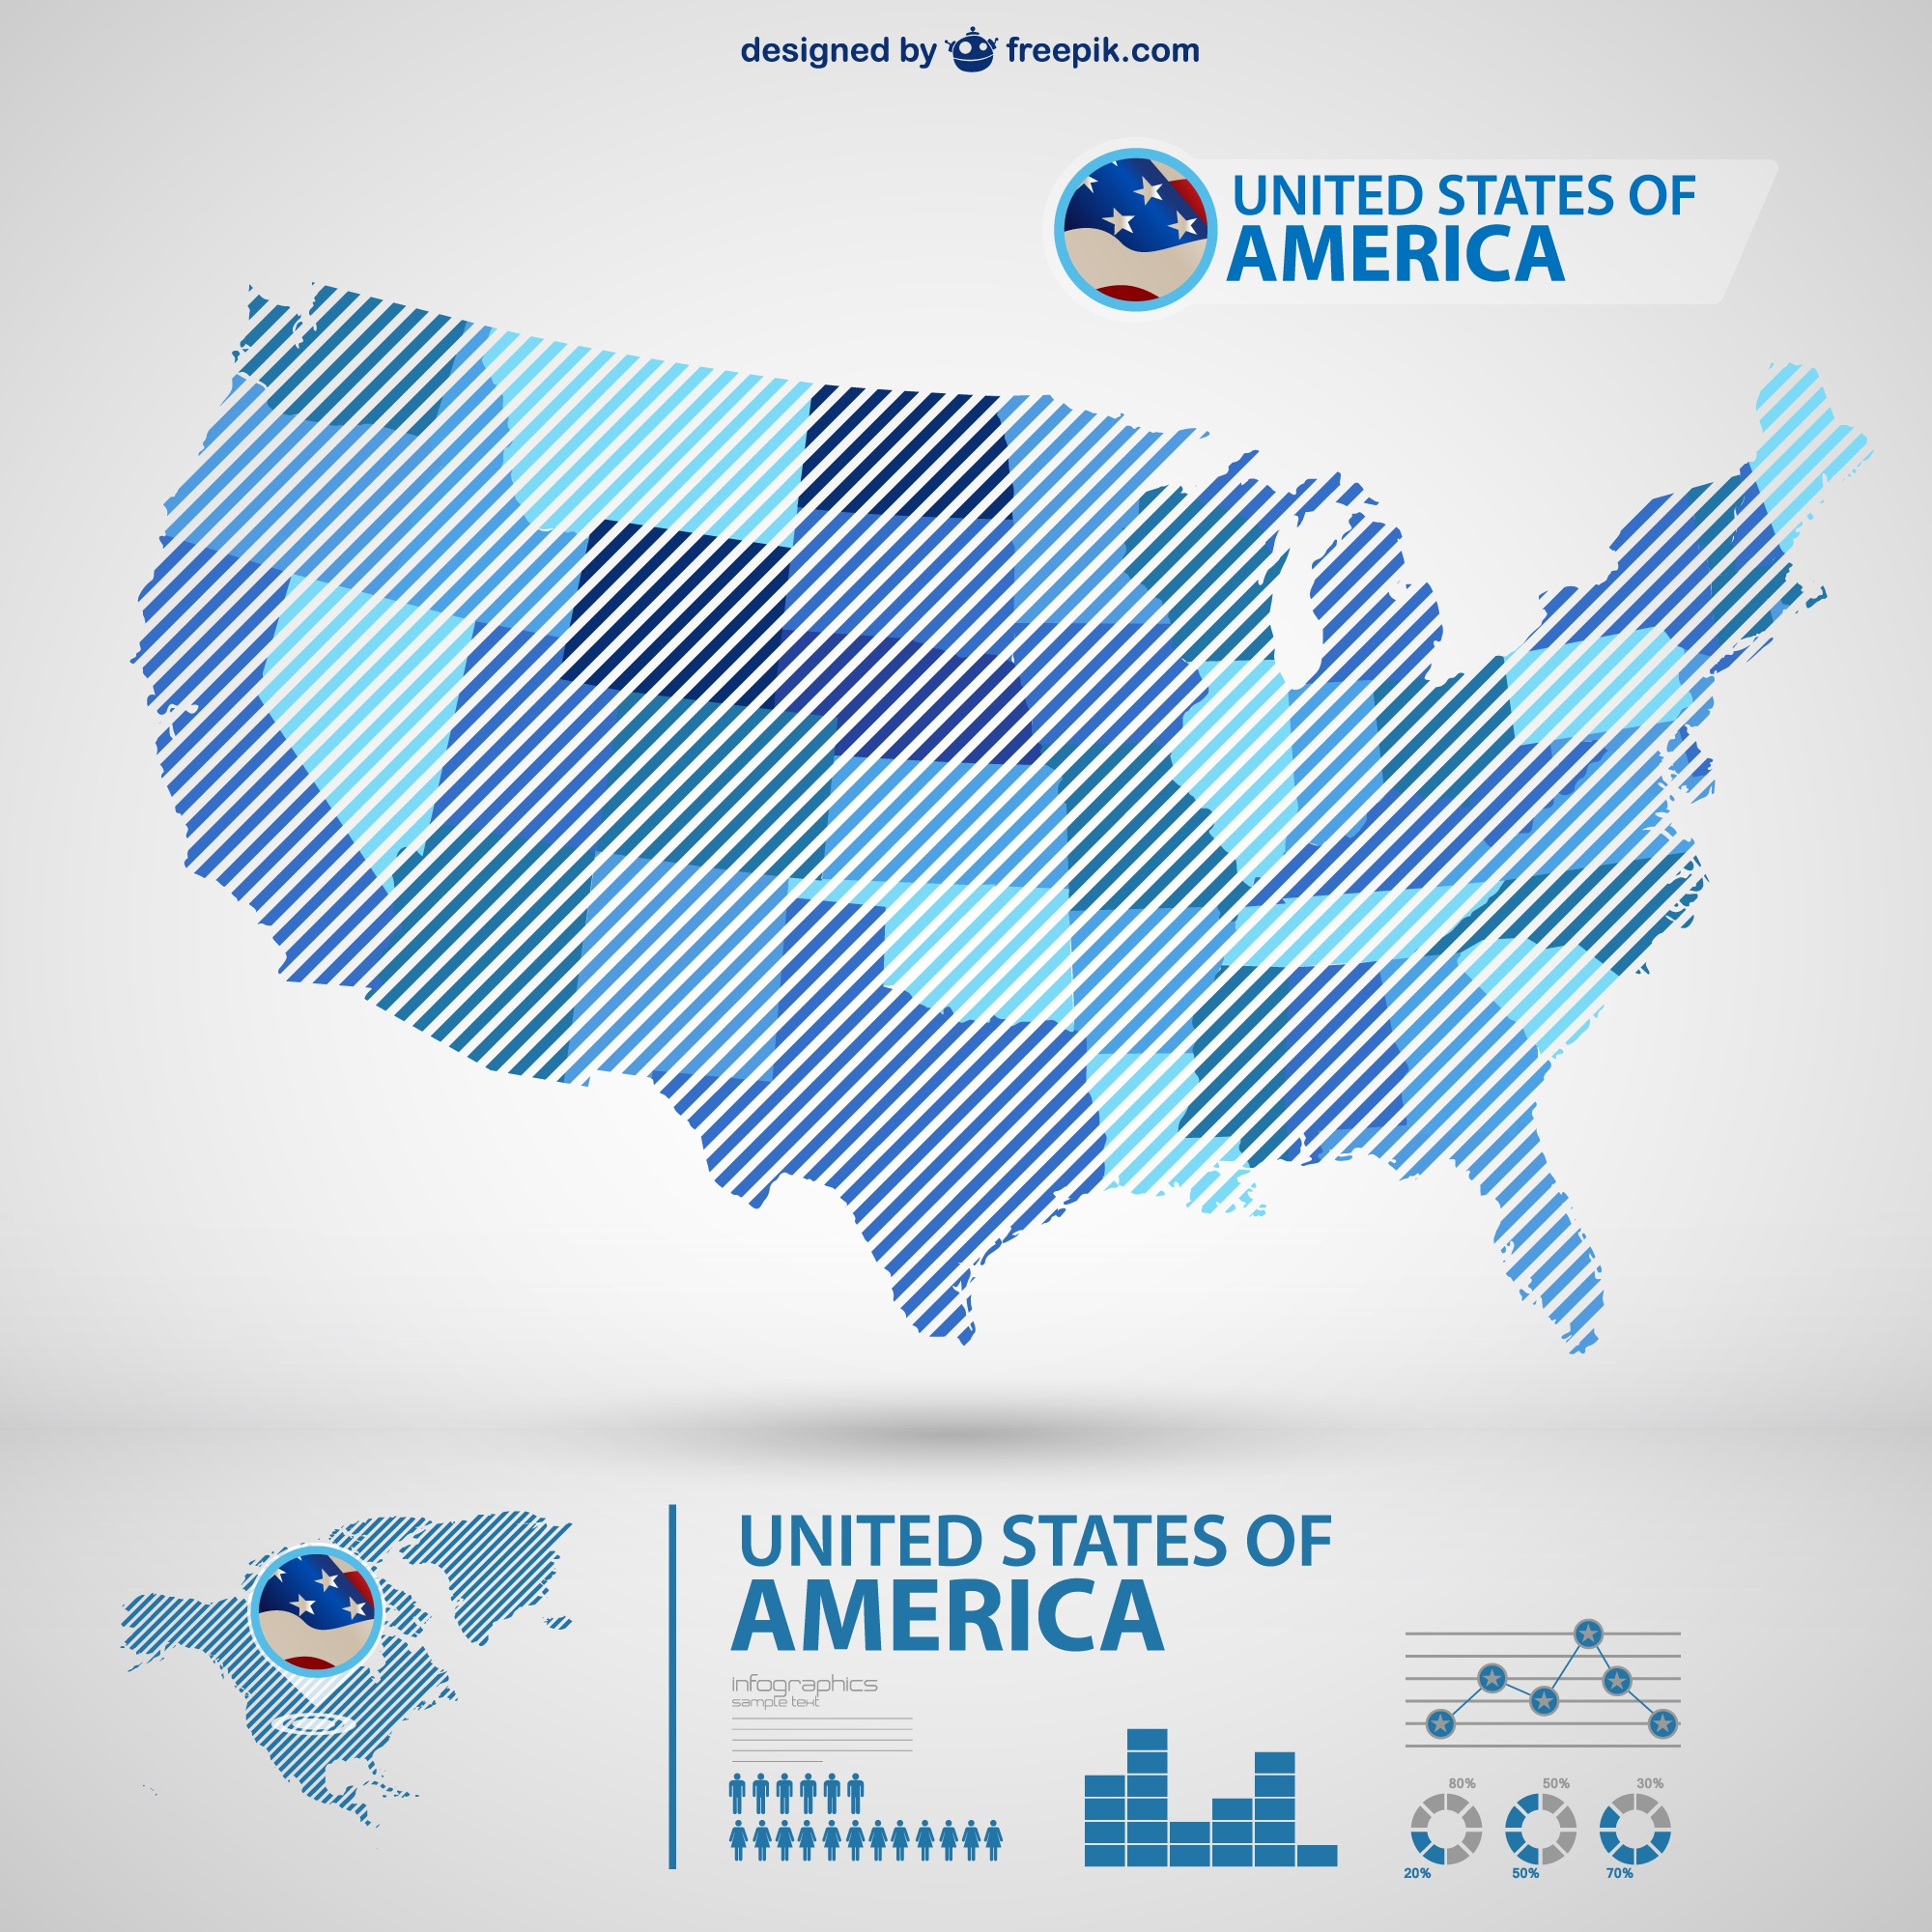 Usa vecteur carte infographie